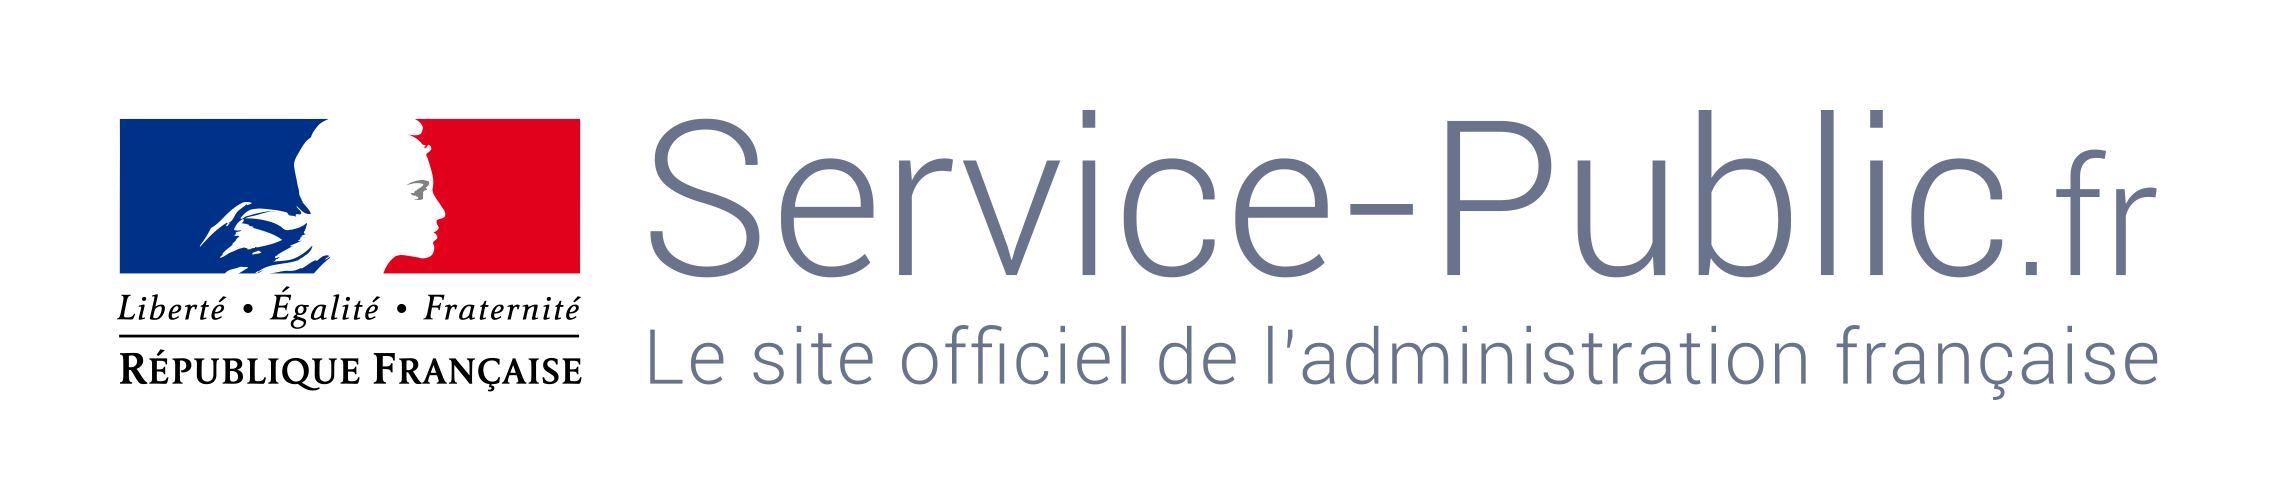 logo_sp_hd_rvb.png